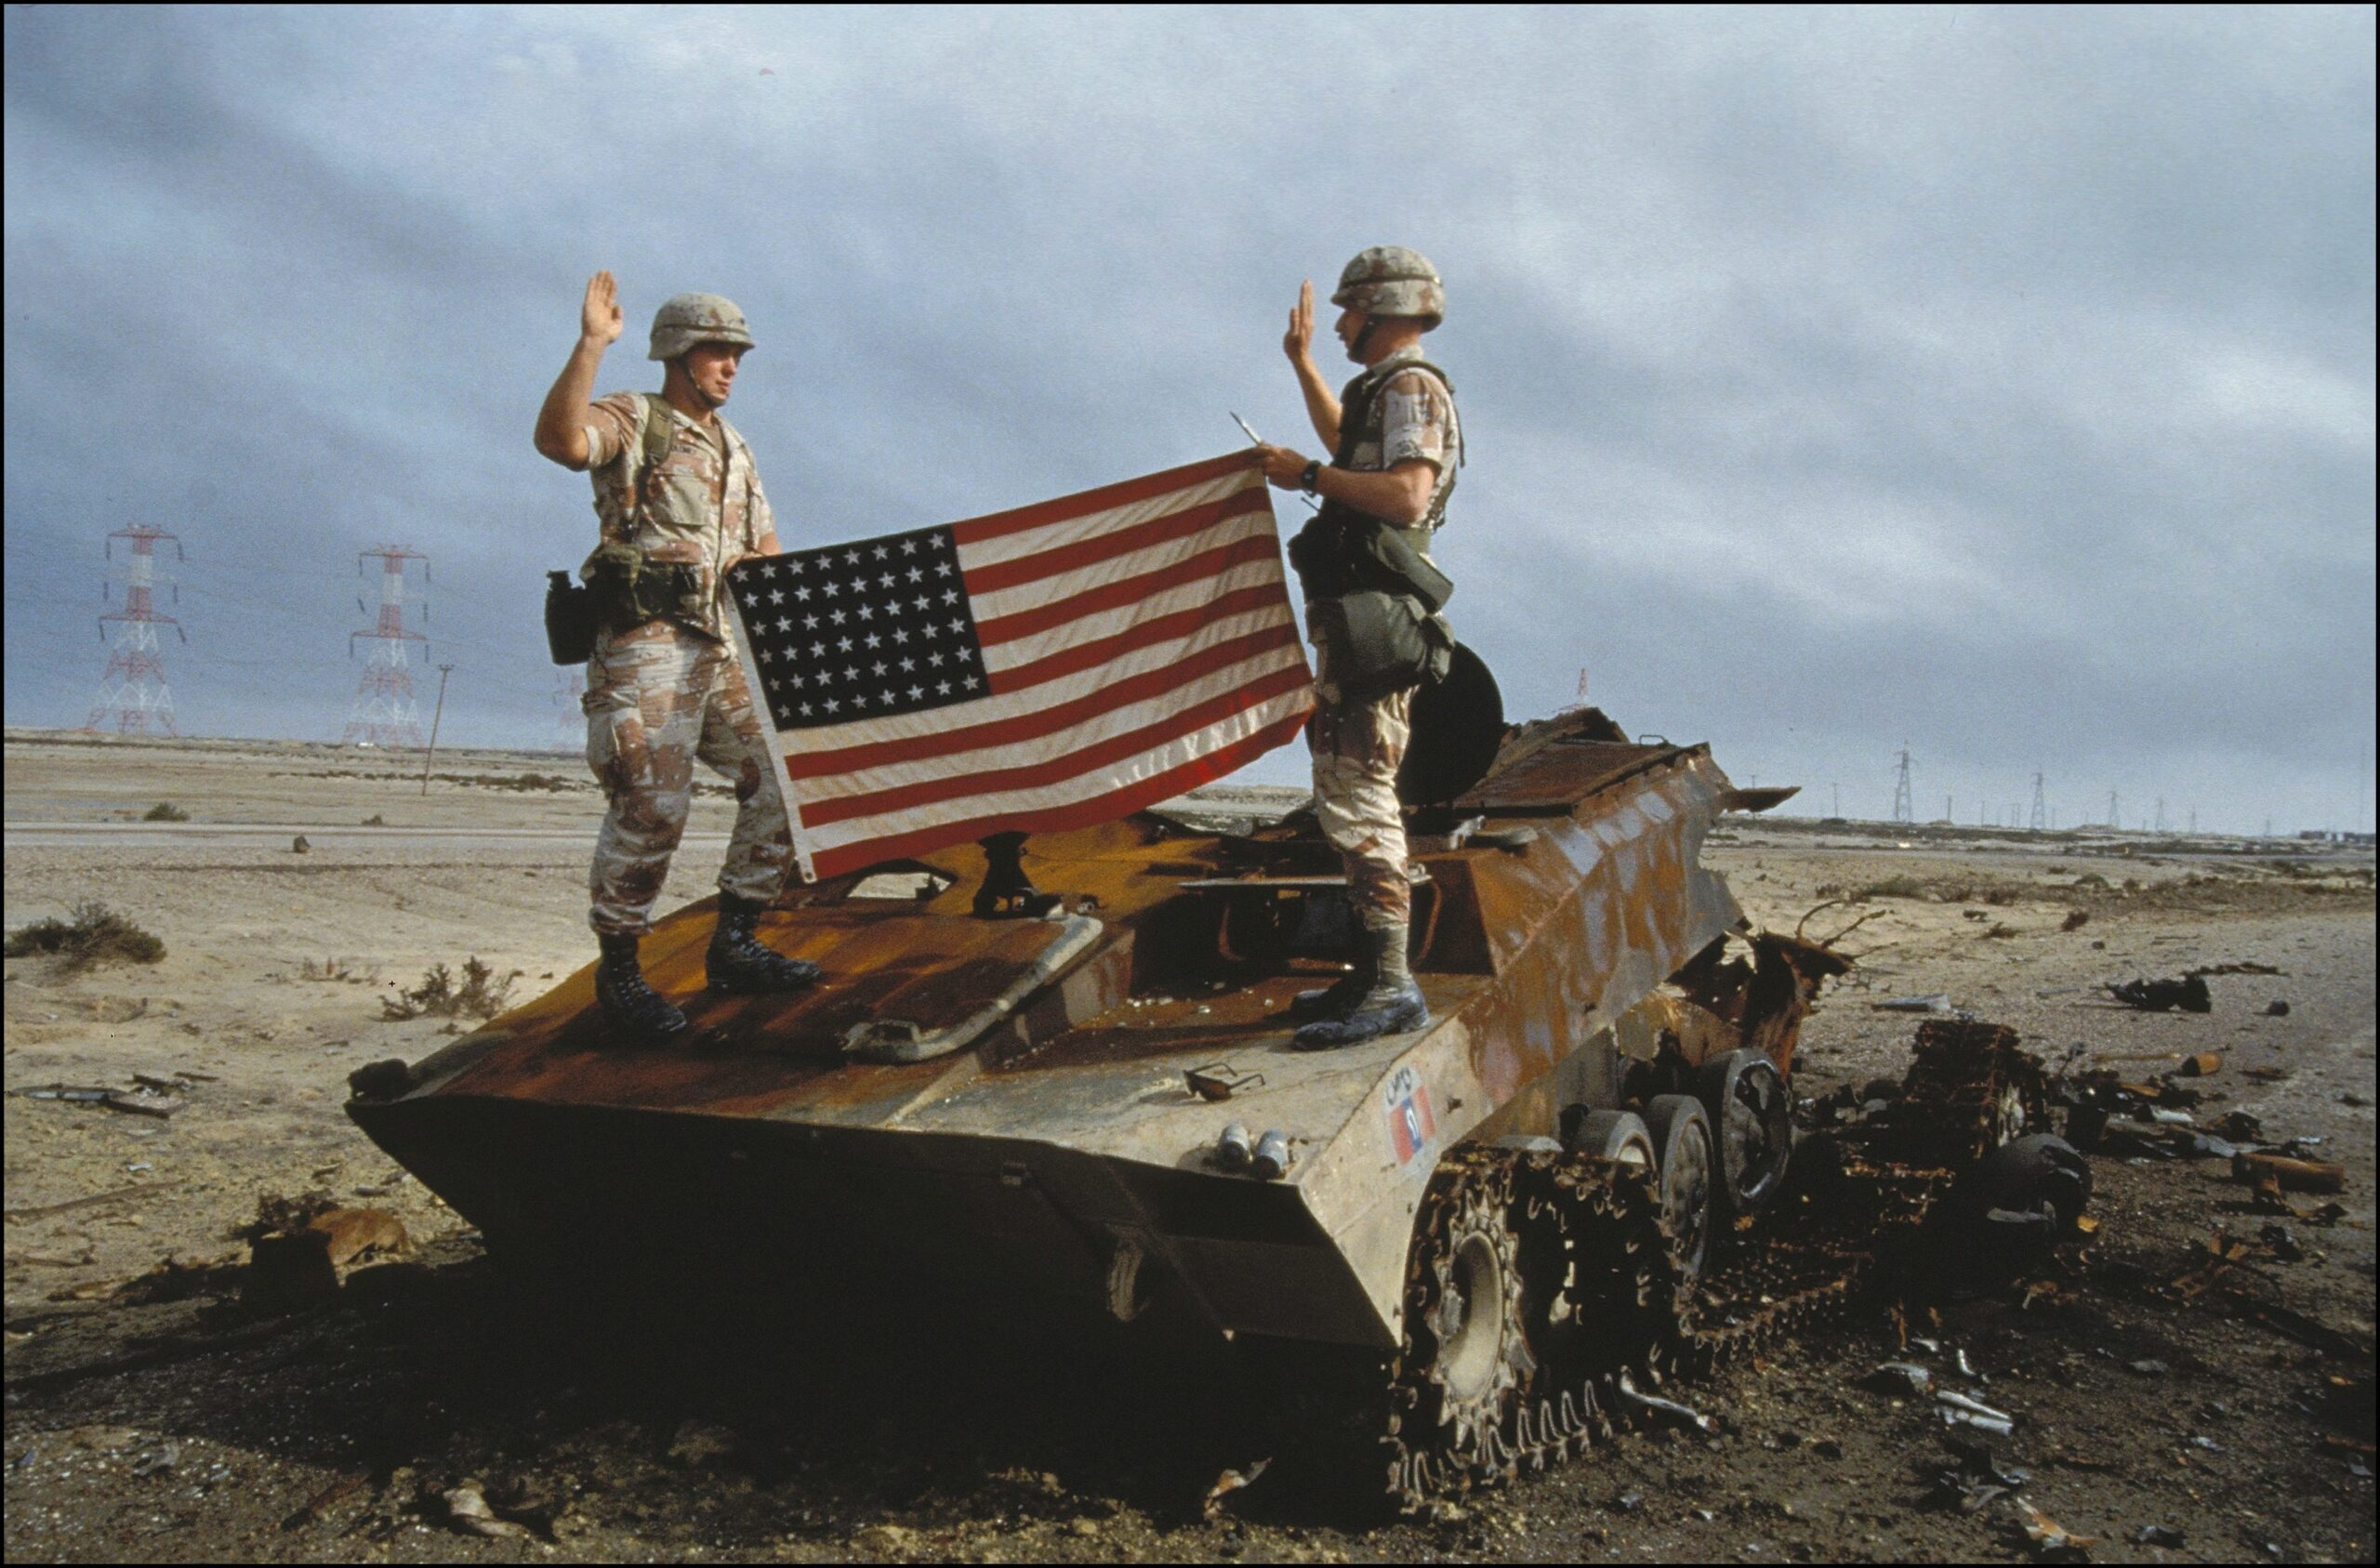 IRAQ - FEBRUARY 01:  US Soldiers Take Oath To The US Army On An Iraqi Destroyed Tank In Iraq On February 27th, 1991.  (Photo By Eric BOUVET/Gamma-Rapho Via Getty Images)